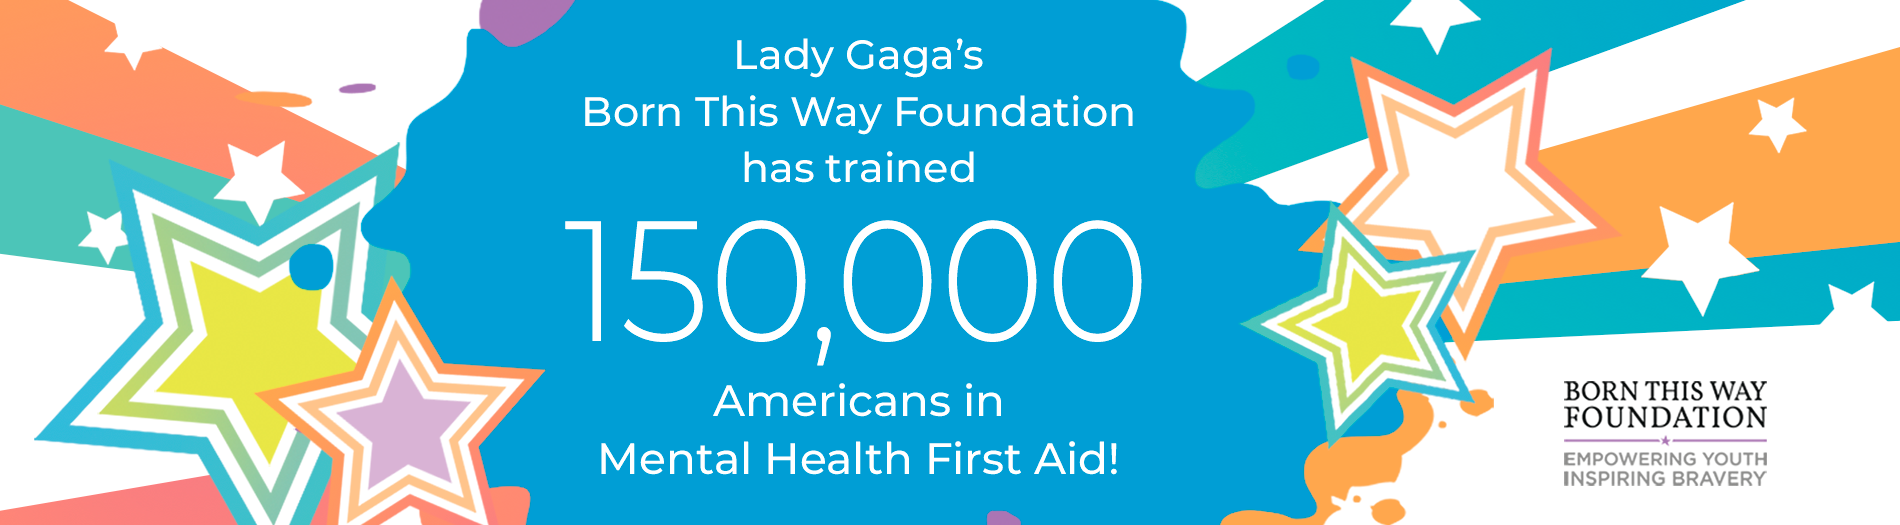 Mental health first aid thank you born this way foundation for training 150000 people in mental health first aid xflitez Gallery